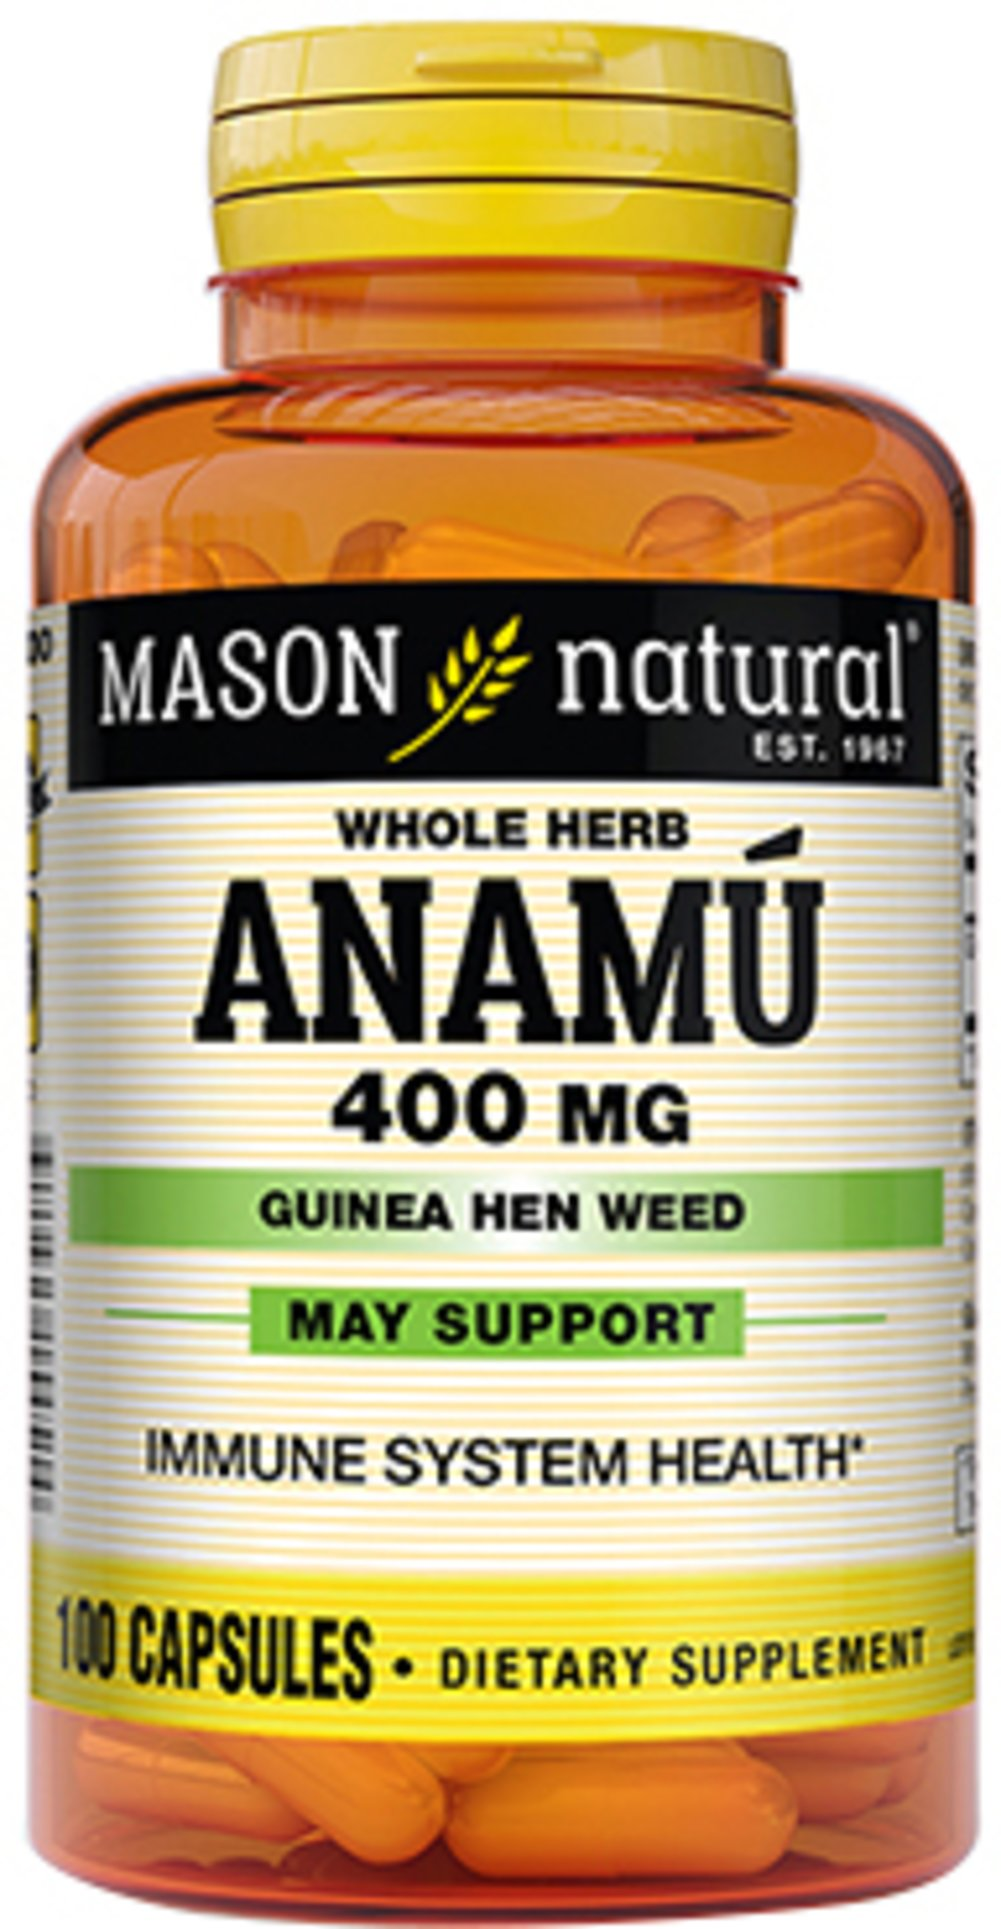 Anamu 400 mg <p><b>From the Manufacturer's Label:</b></p> <p> Anamu 400 mg is manufactured by Mason Naturals.</p> 100 Capsules 400 mg $5.99